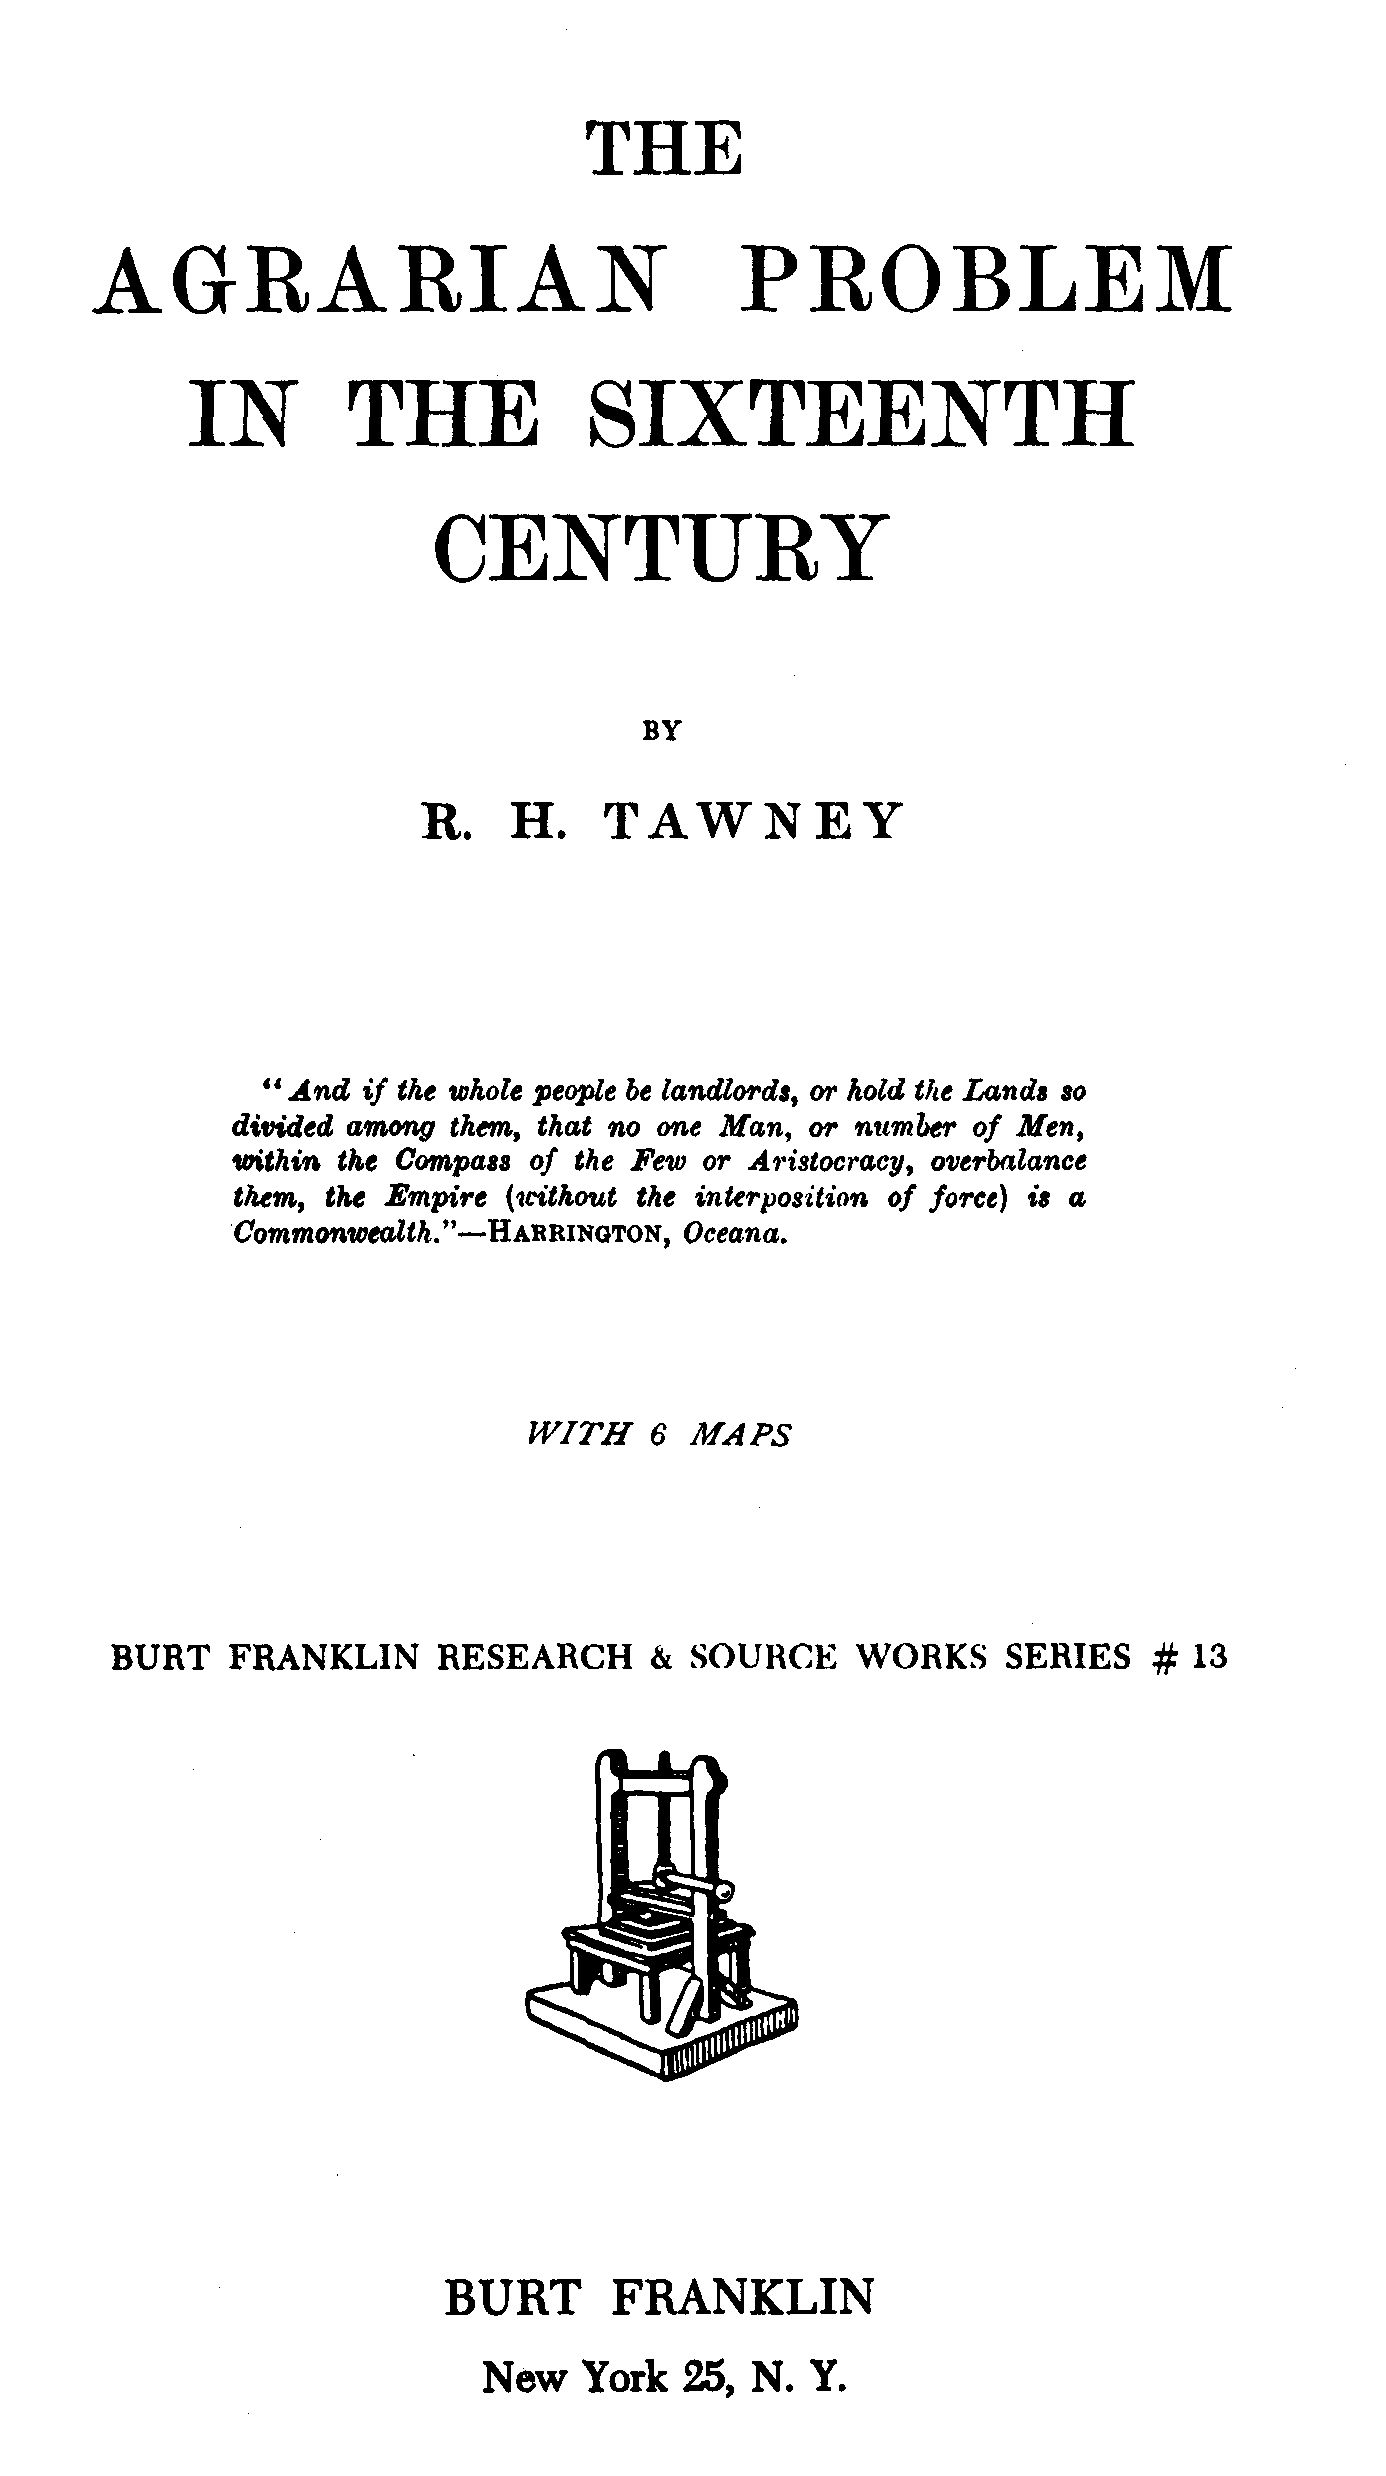 The Project Gutenberg eBook of The Agrarian Problem in the